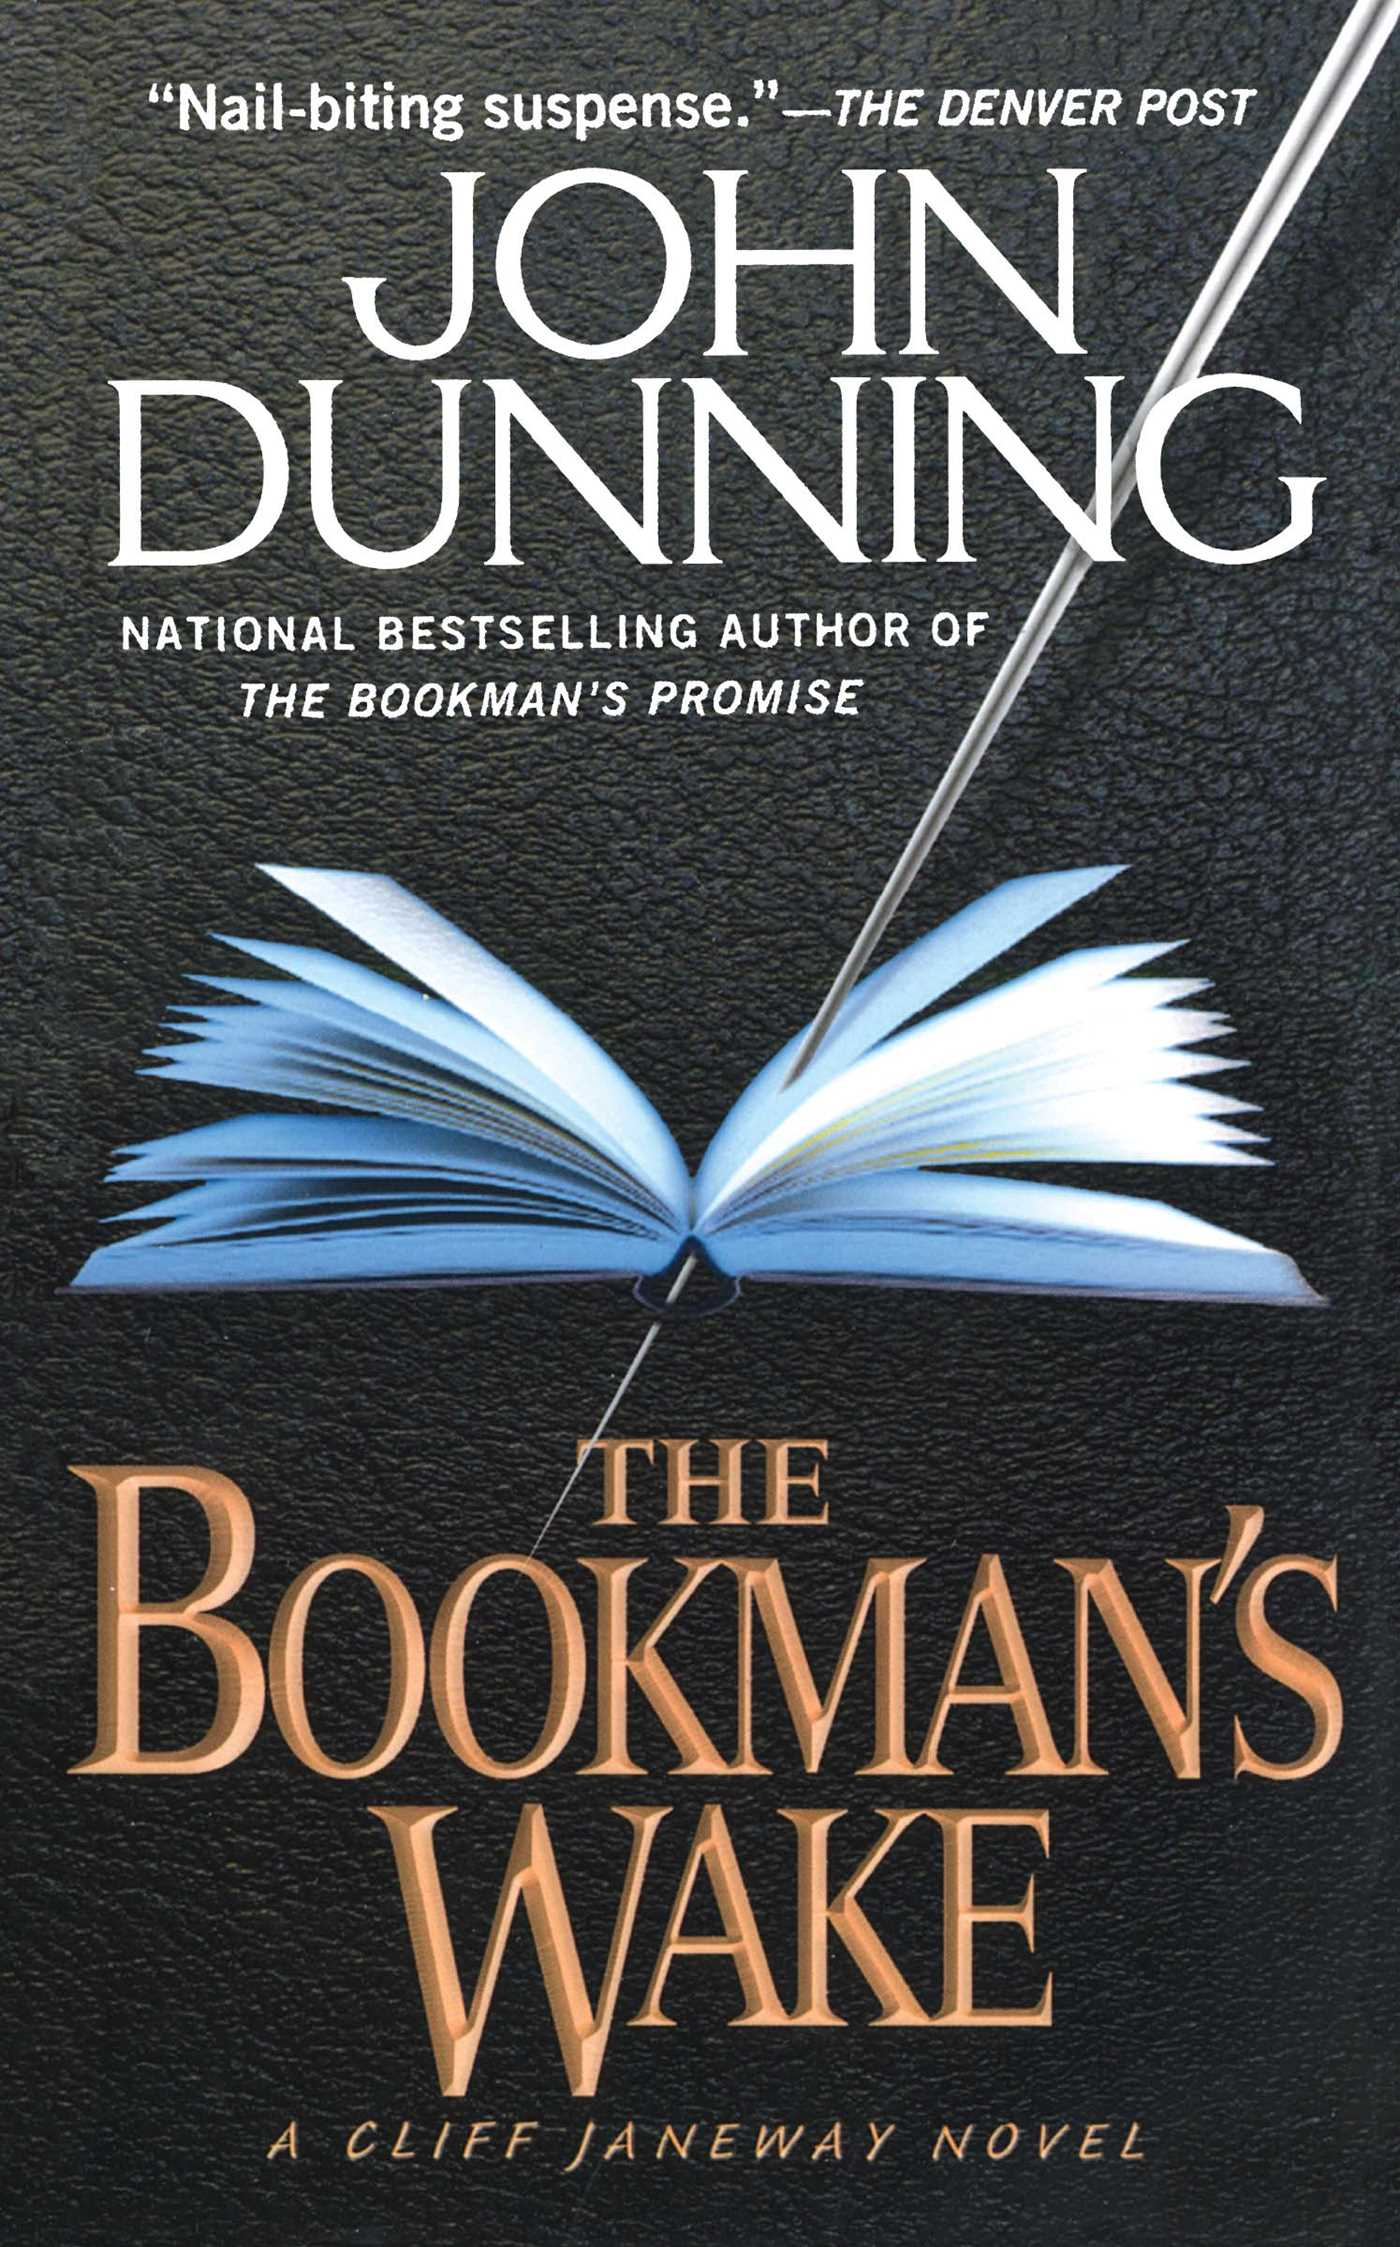 The-bookmans-wake-9781439117323_hr